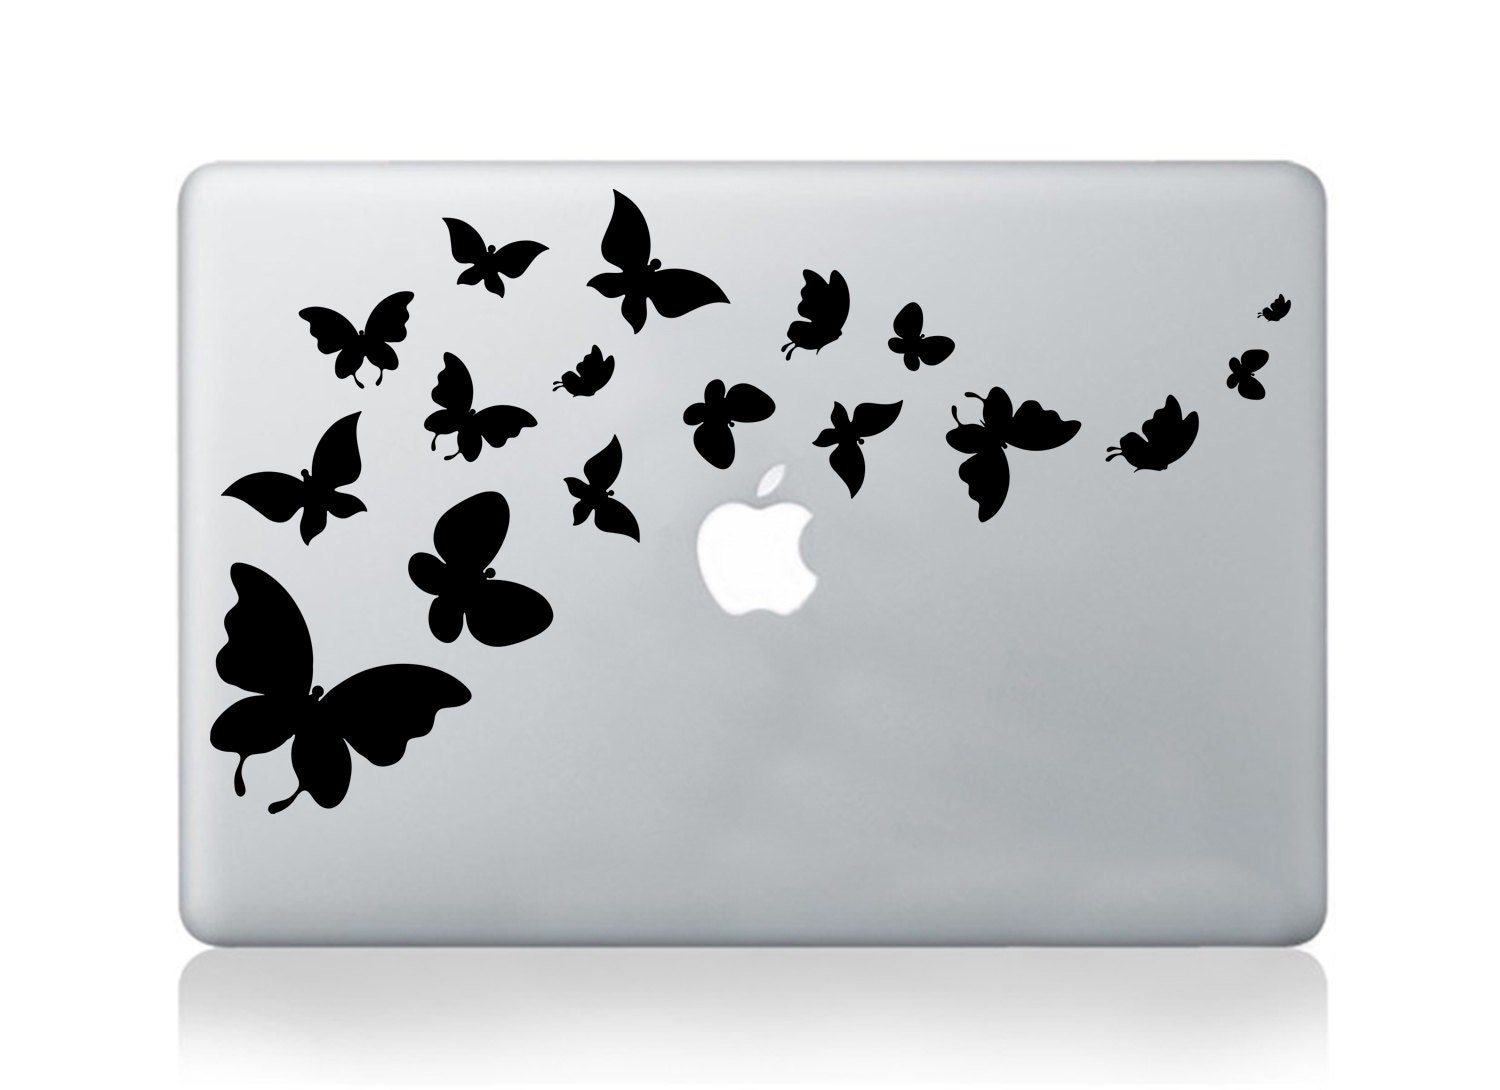 Macbook decal pro air butterflies vinyl sticker decal mural transfer graphic laptop notebook skin Asus HP Toshiba Dell butterfly decal